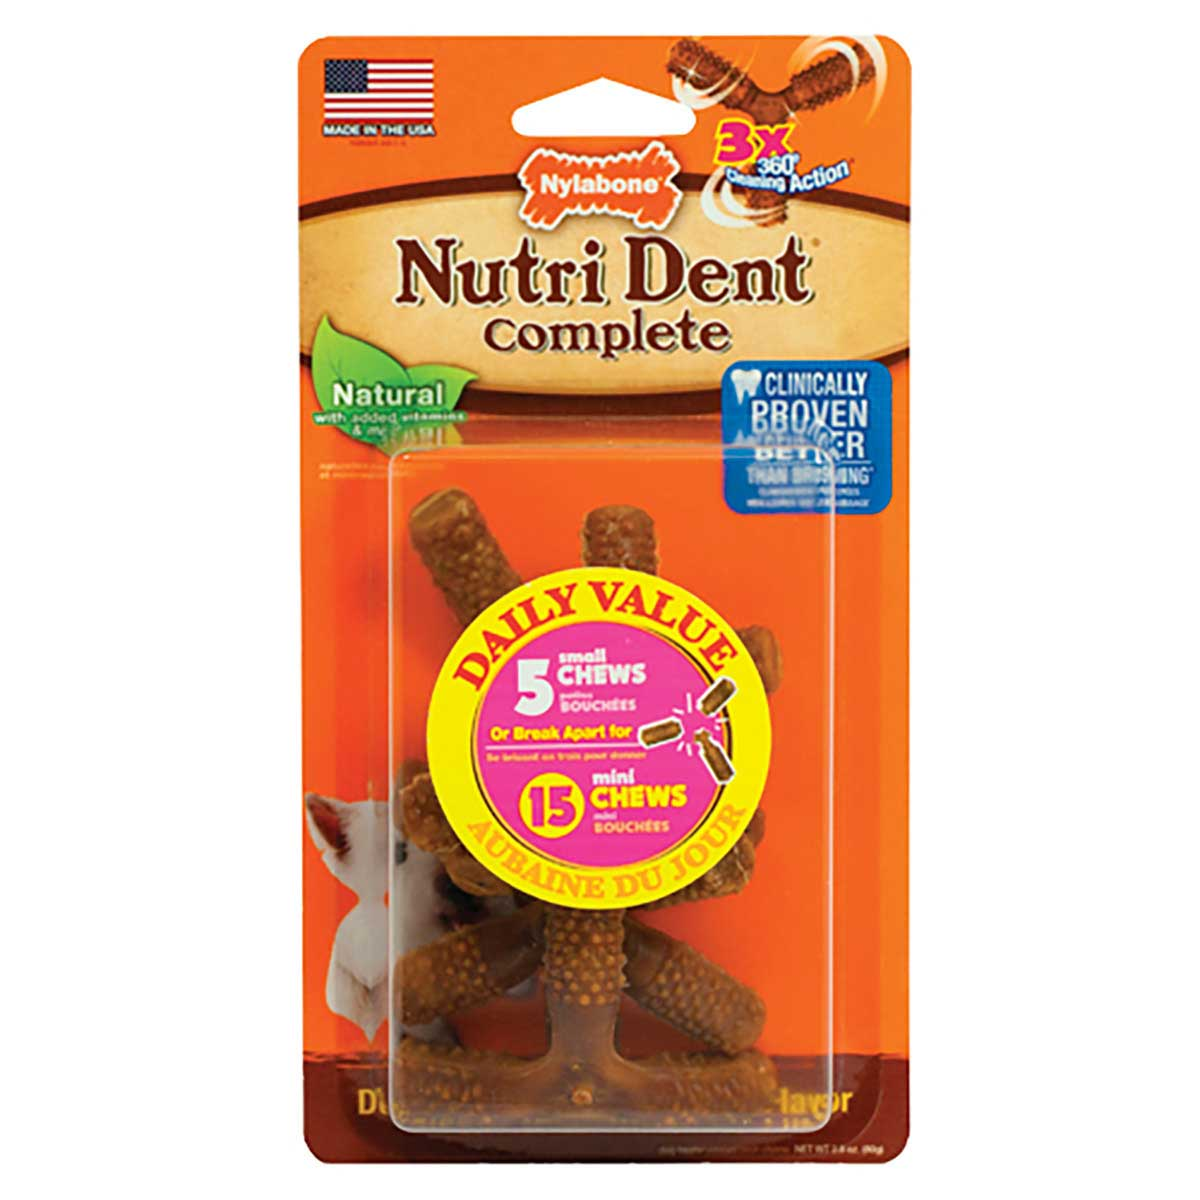 Nylabone Nutri Dent Complete 3 Point Bone Dog Chew Small 5 Count